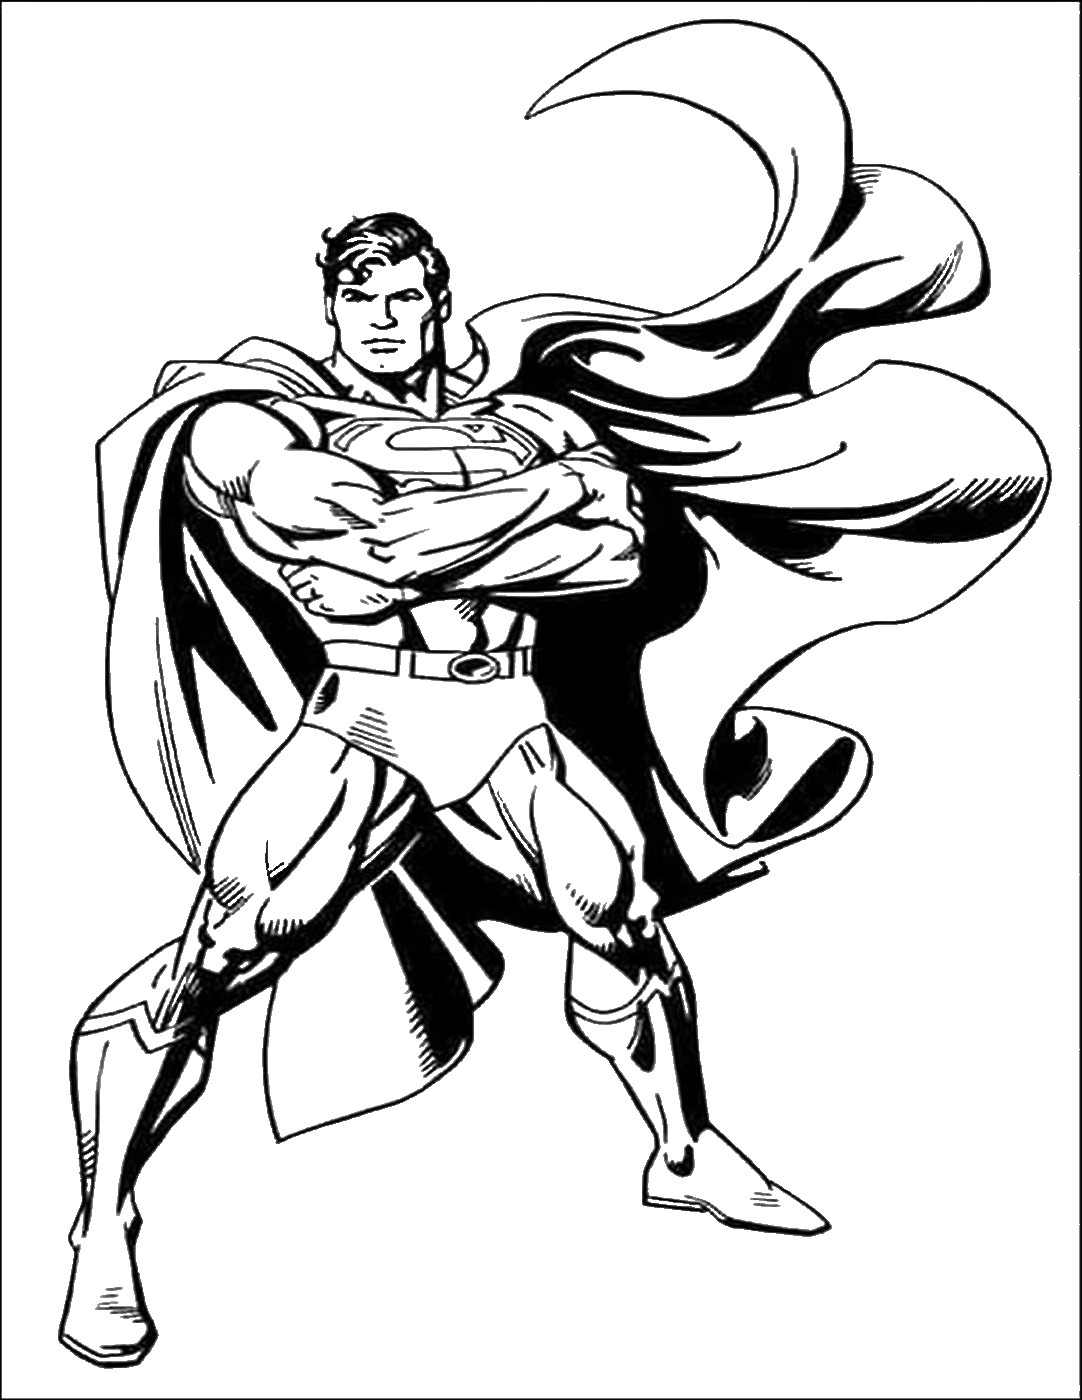 Uncategorized Superman Colouring Games magnificent adventures of an unbeatable superhero superman 20 coloring page